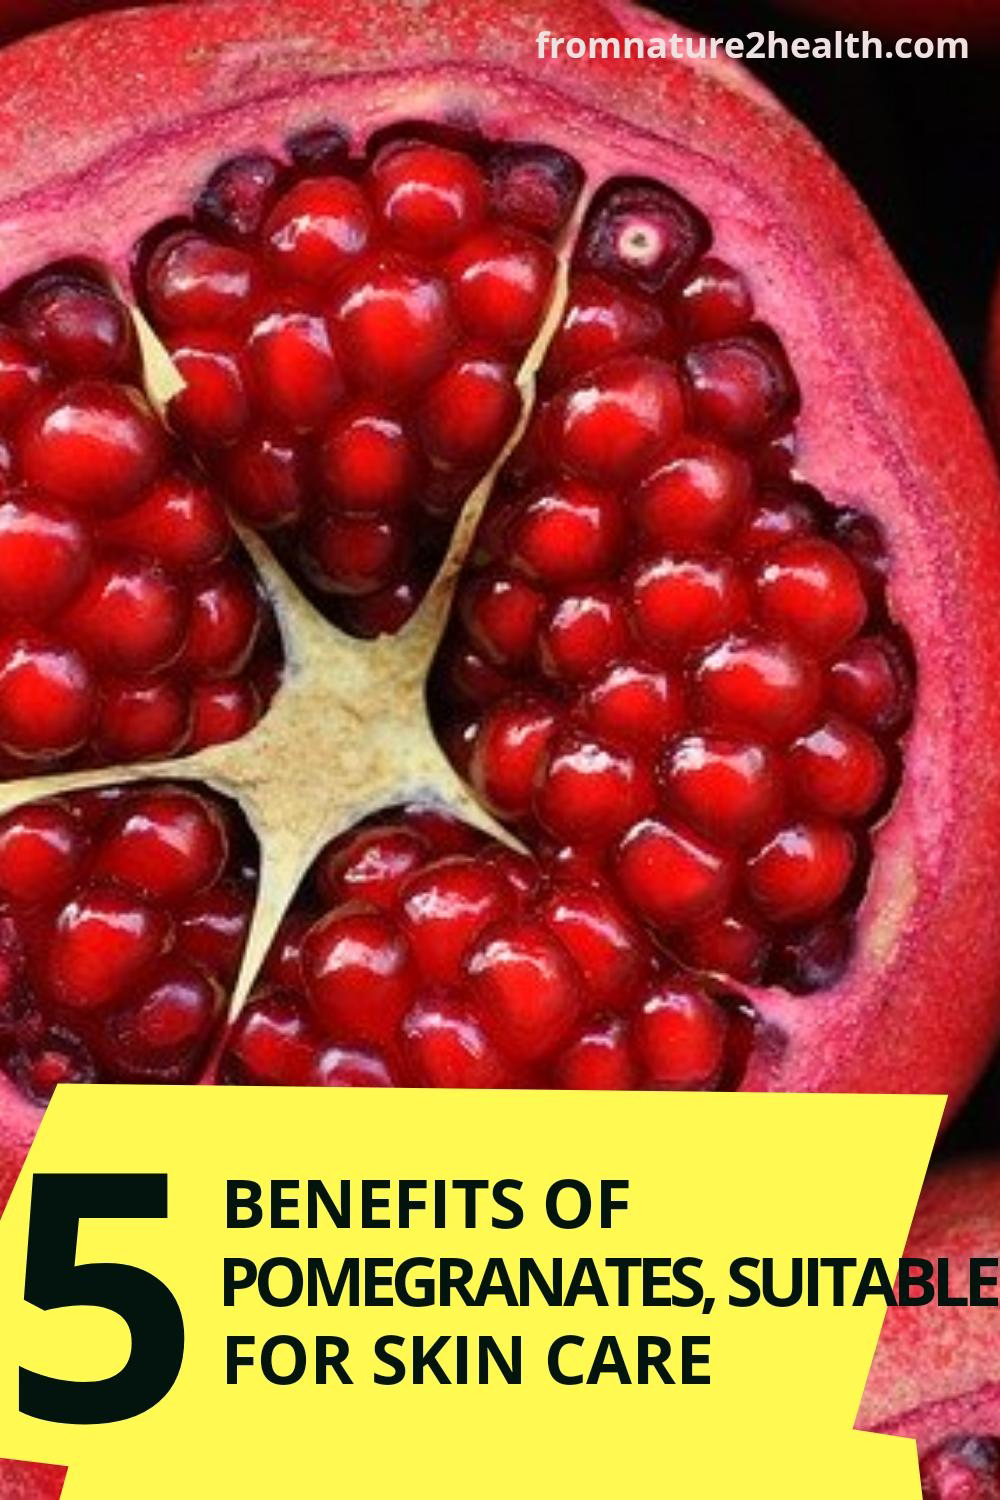 5 Benefits of Pomegranates for Beauty, Cancer, Digestion, Heart Disease, Hypertension